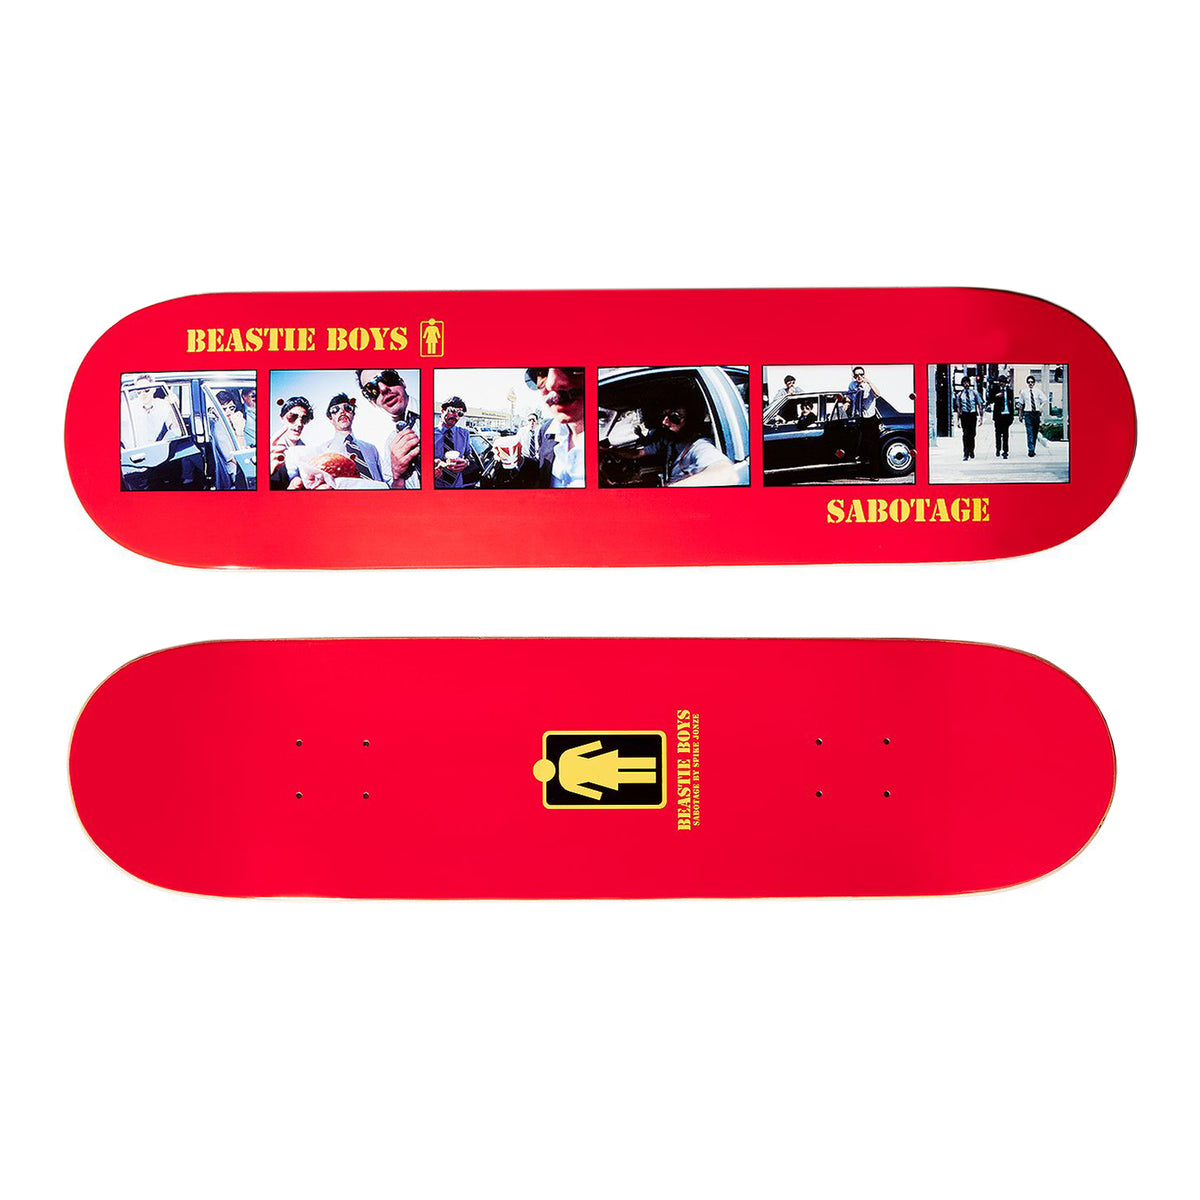 Beastie Boys: Sabotage Skateboard Deck By Girl Skateboards / Spike Jonze - 8.25""